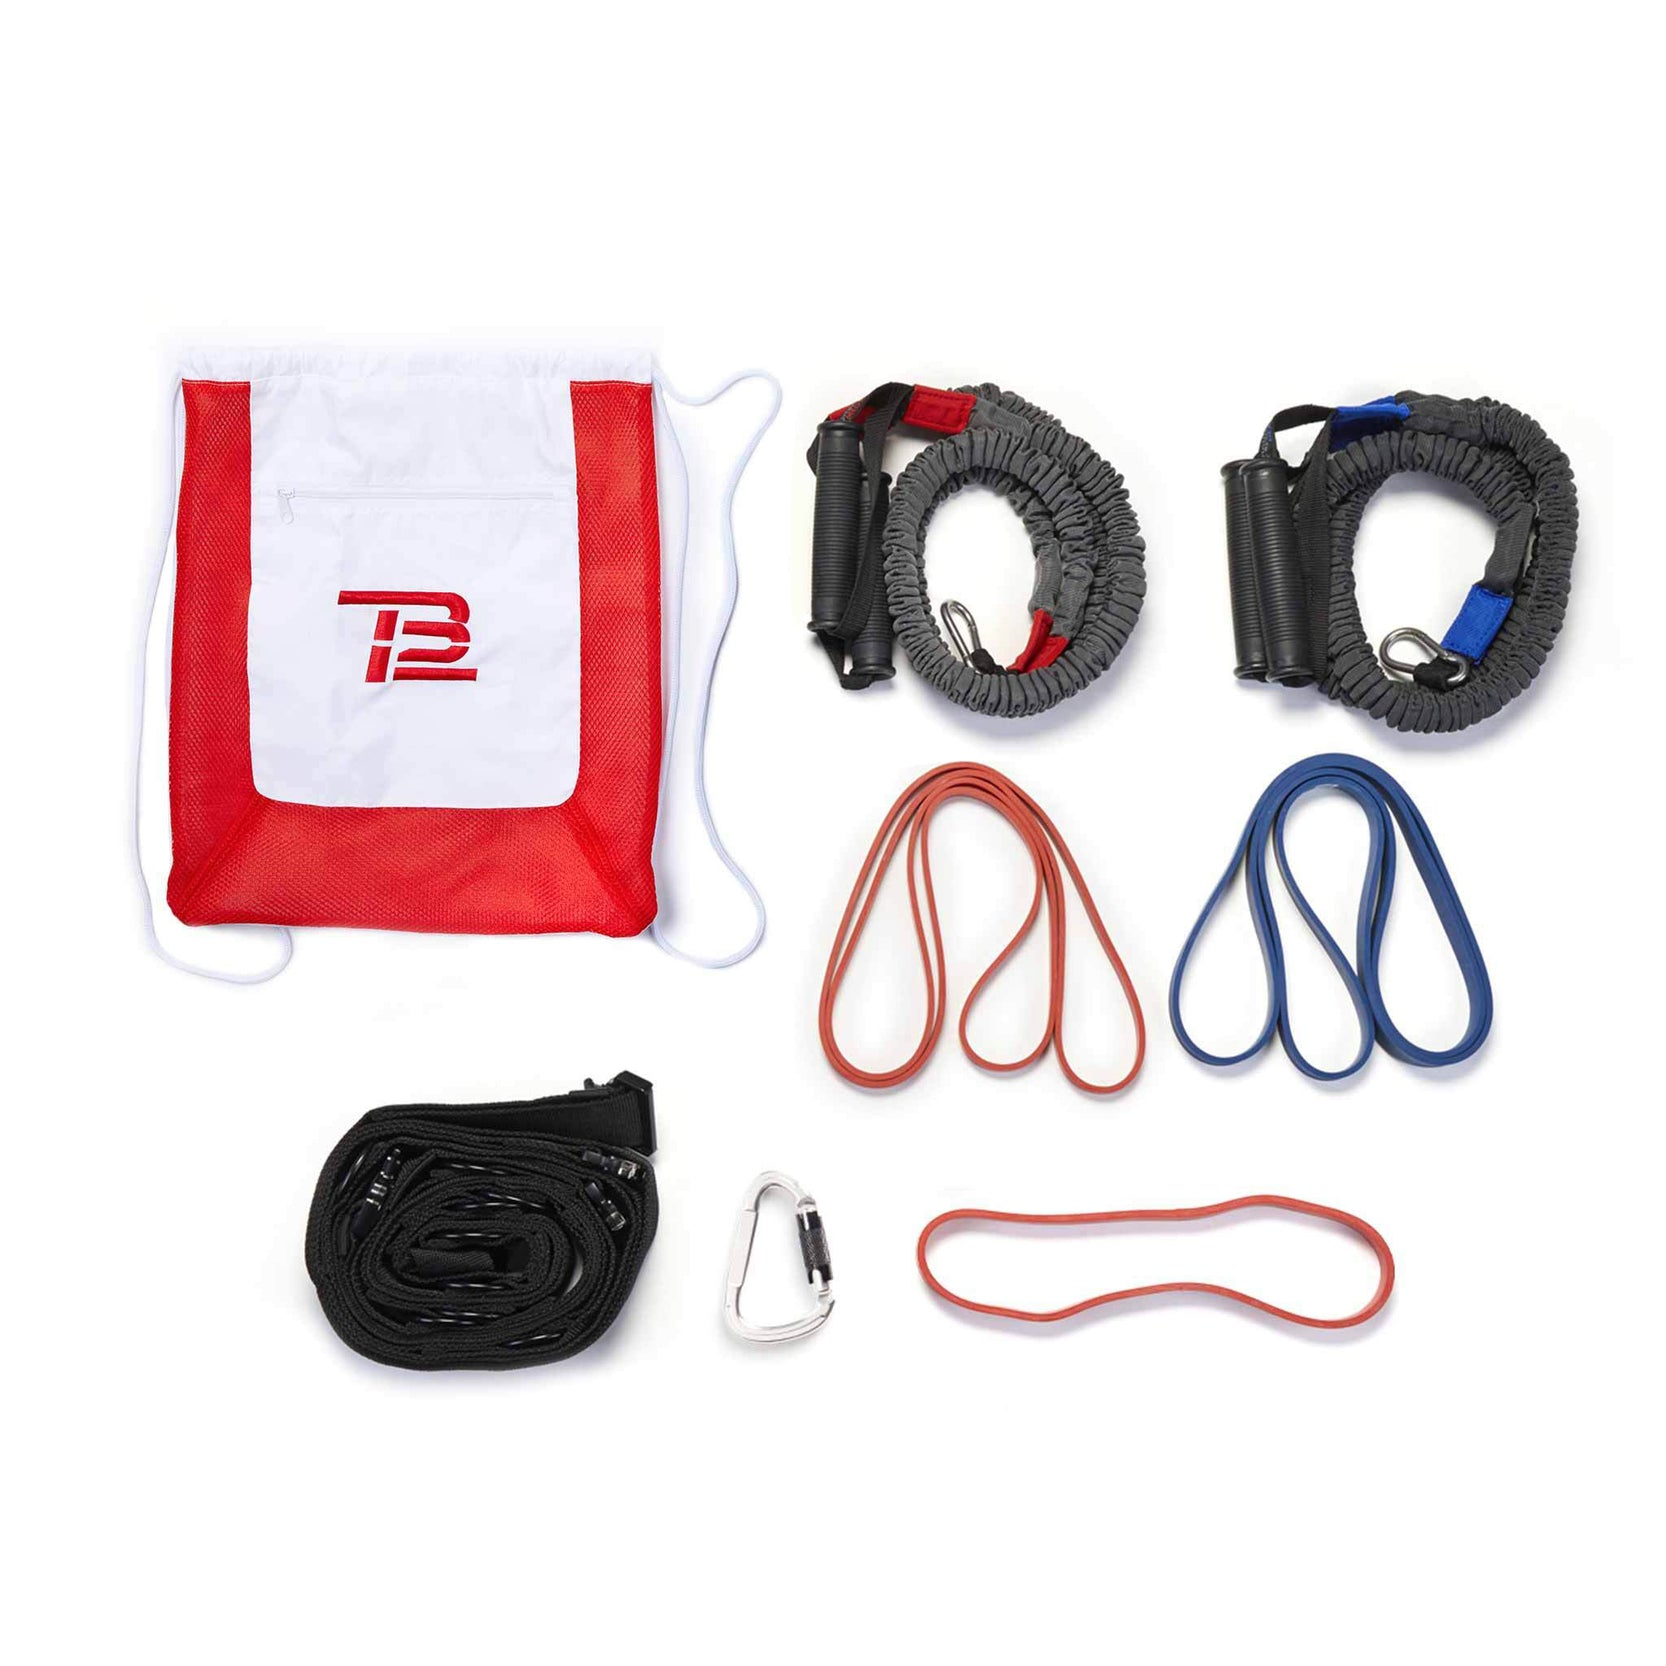 TB12™ Looped and Handle Bands Kit Level 2